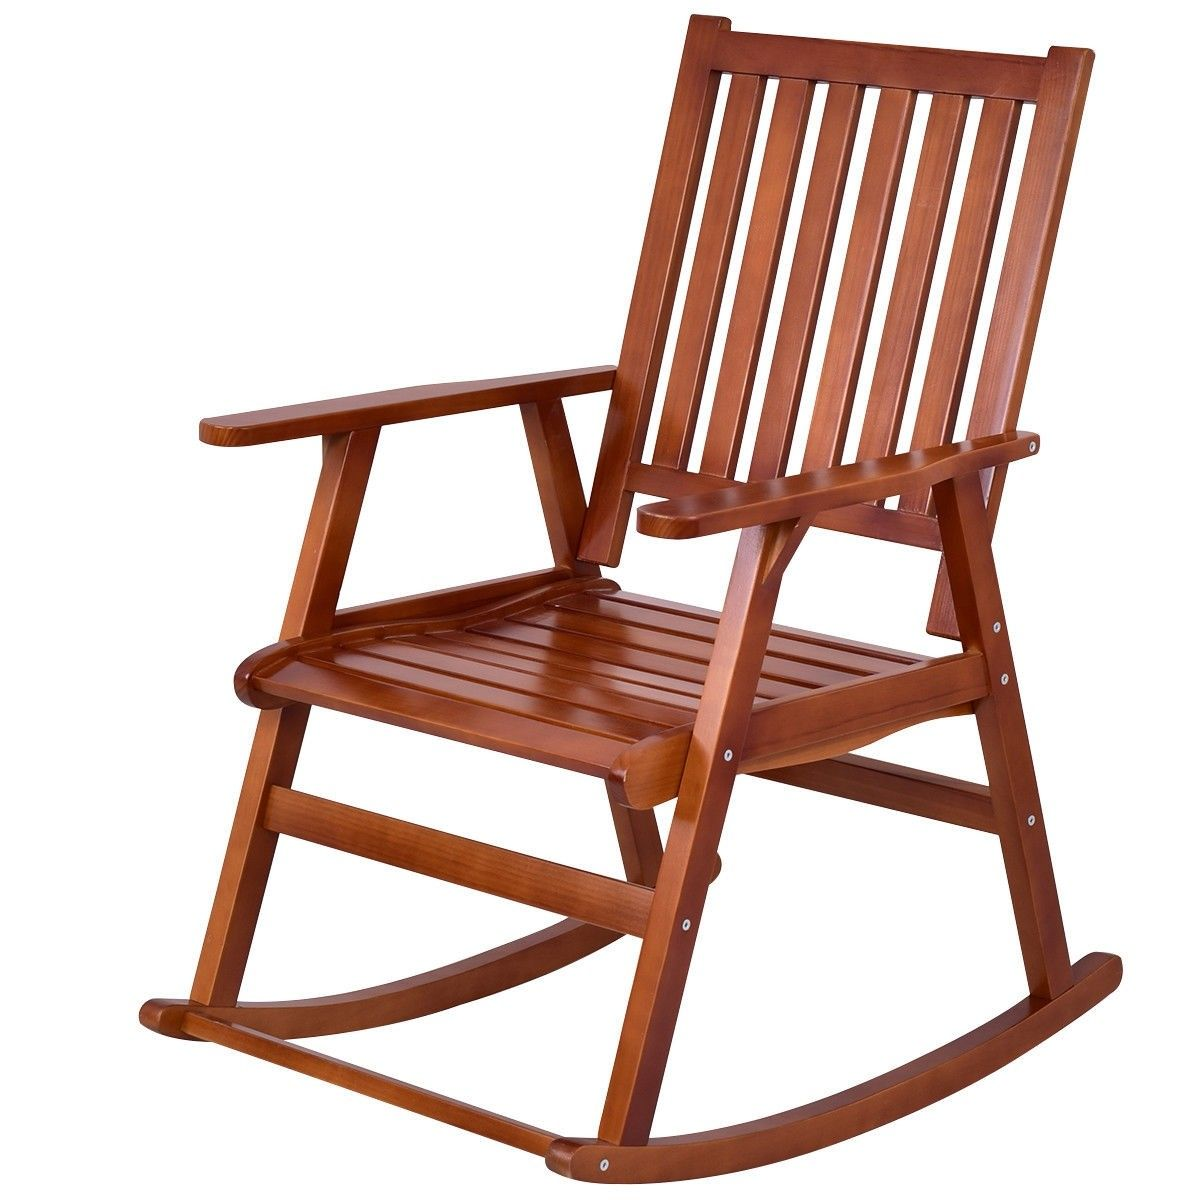 Indoor Outdoor Wood Single Porch Rocking Chair Rocking